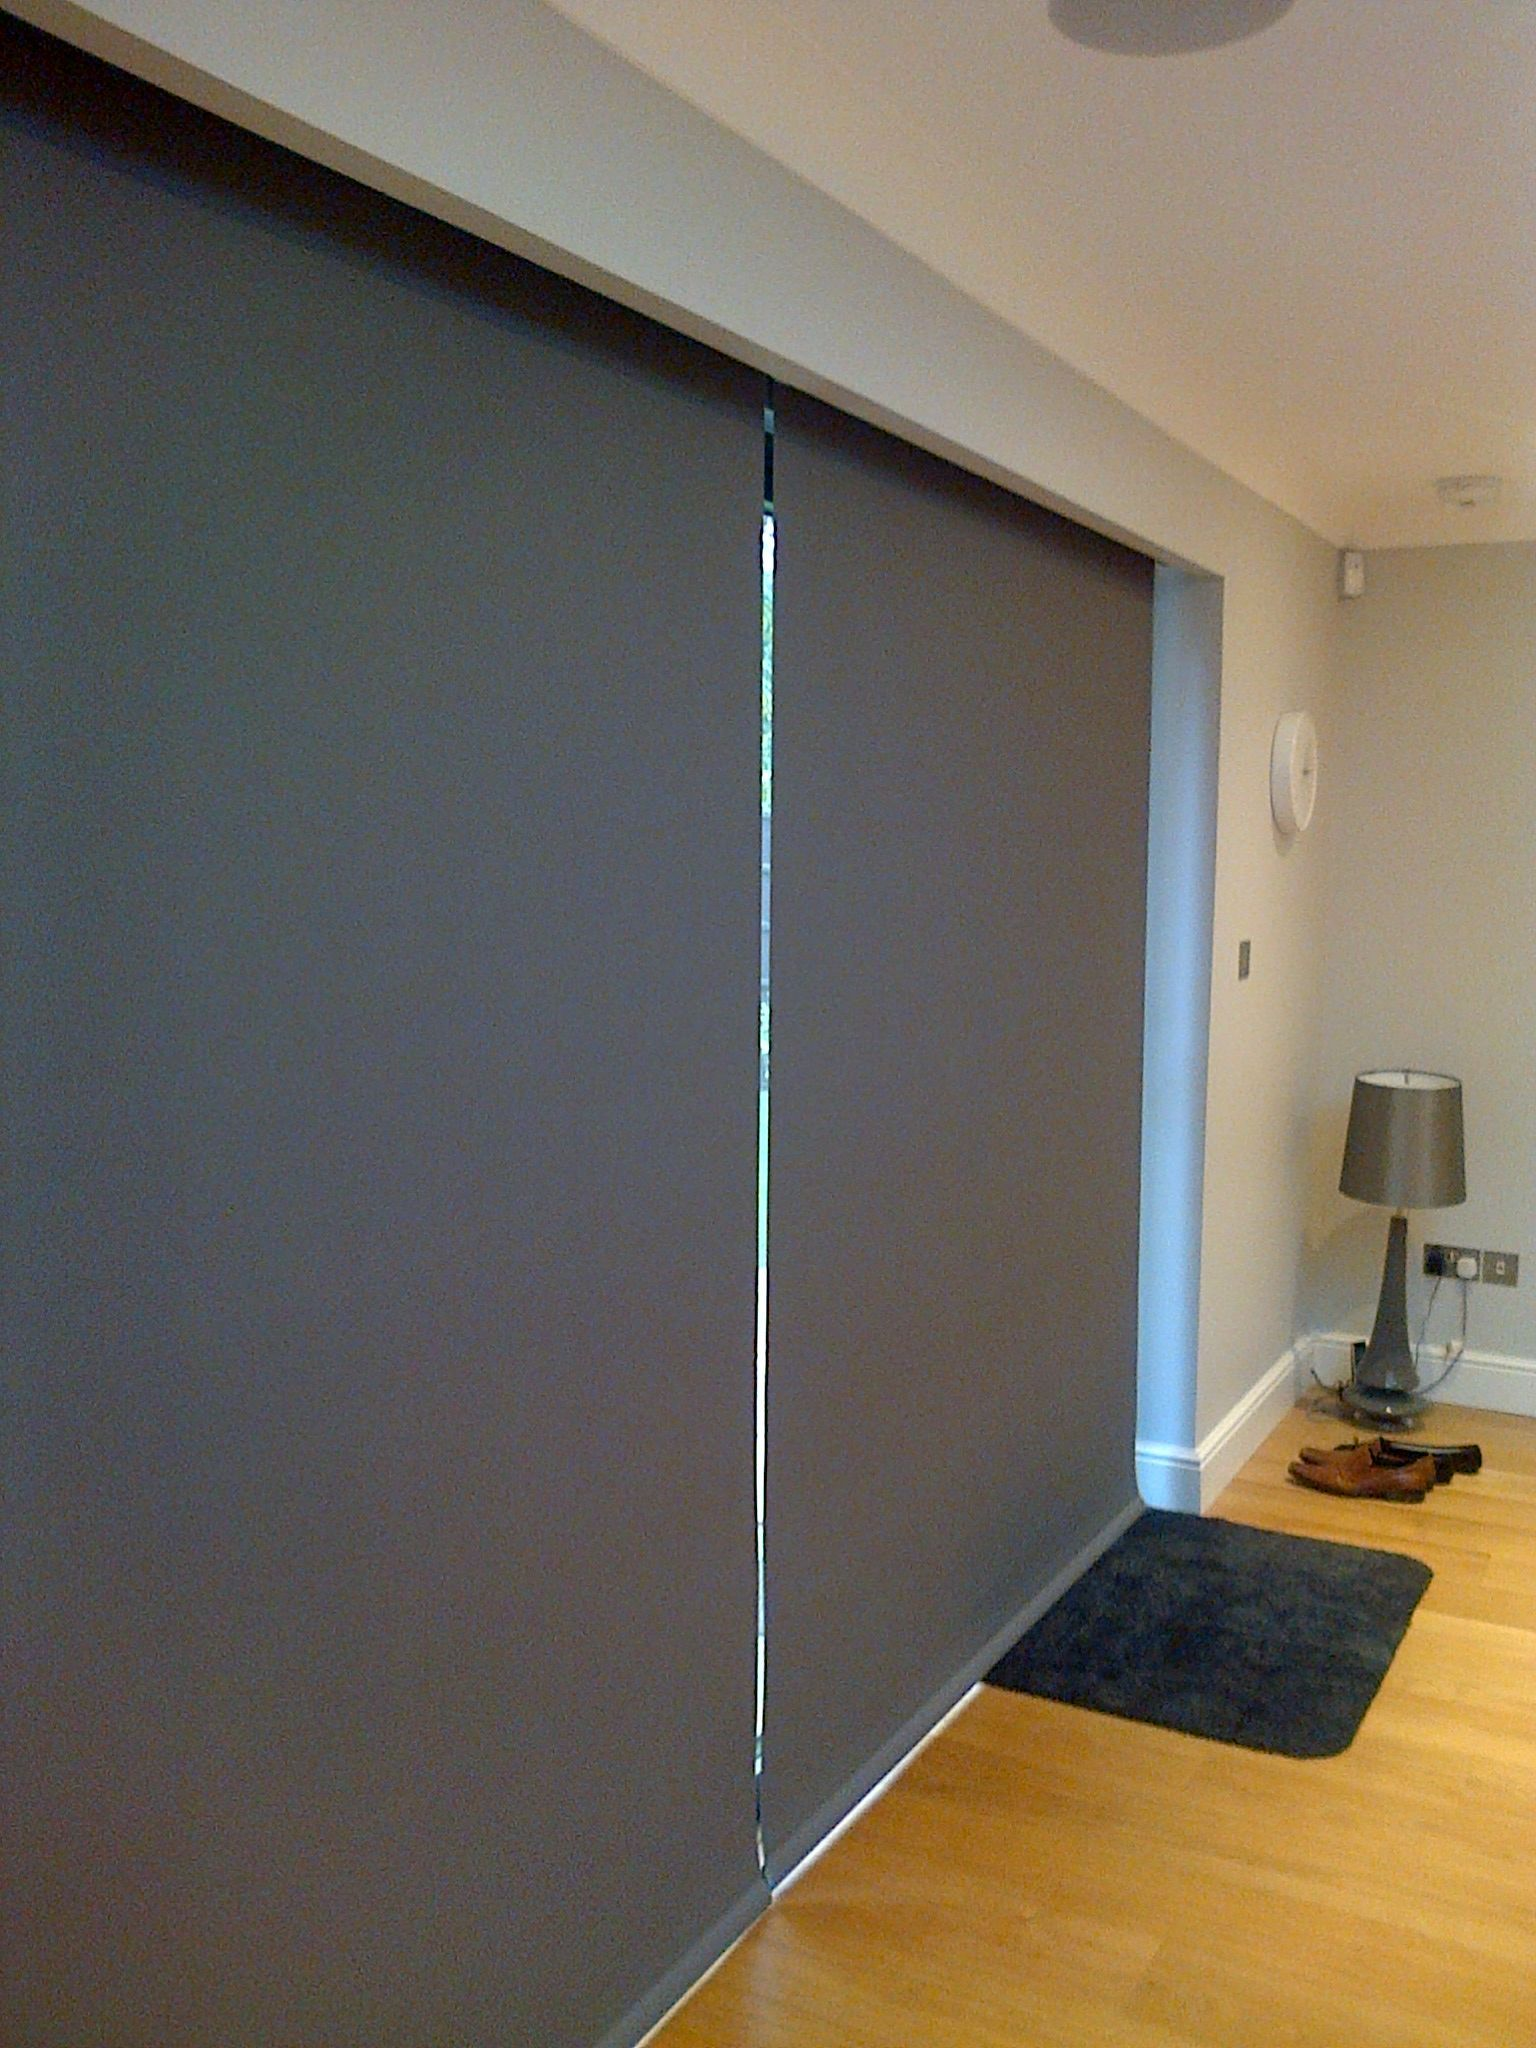 Keep The Heat In Next To Your Bifold Doors With Electric Blinds From Deans Blinds Awnings Blinds For Bifold Doors Sliding Door Blinds Door Blinds